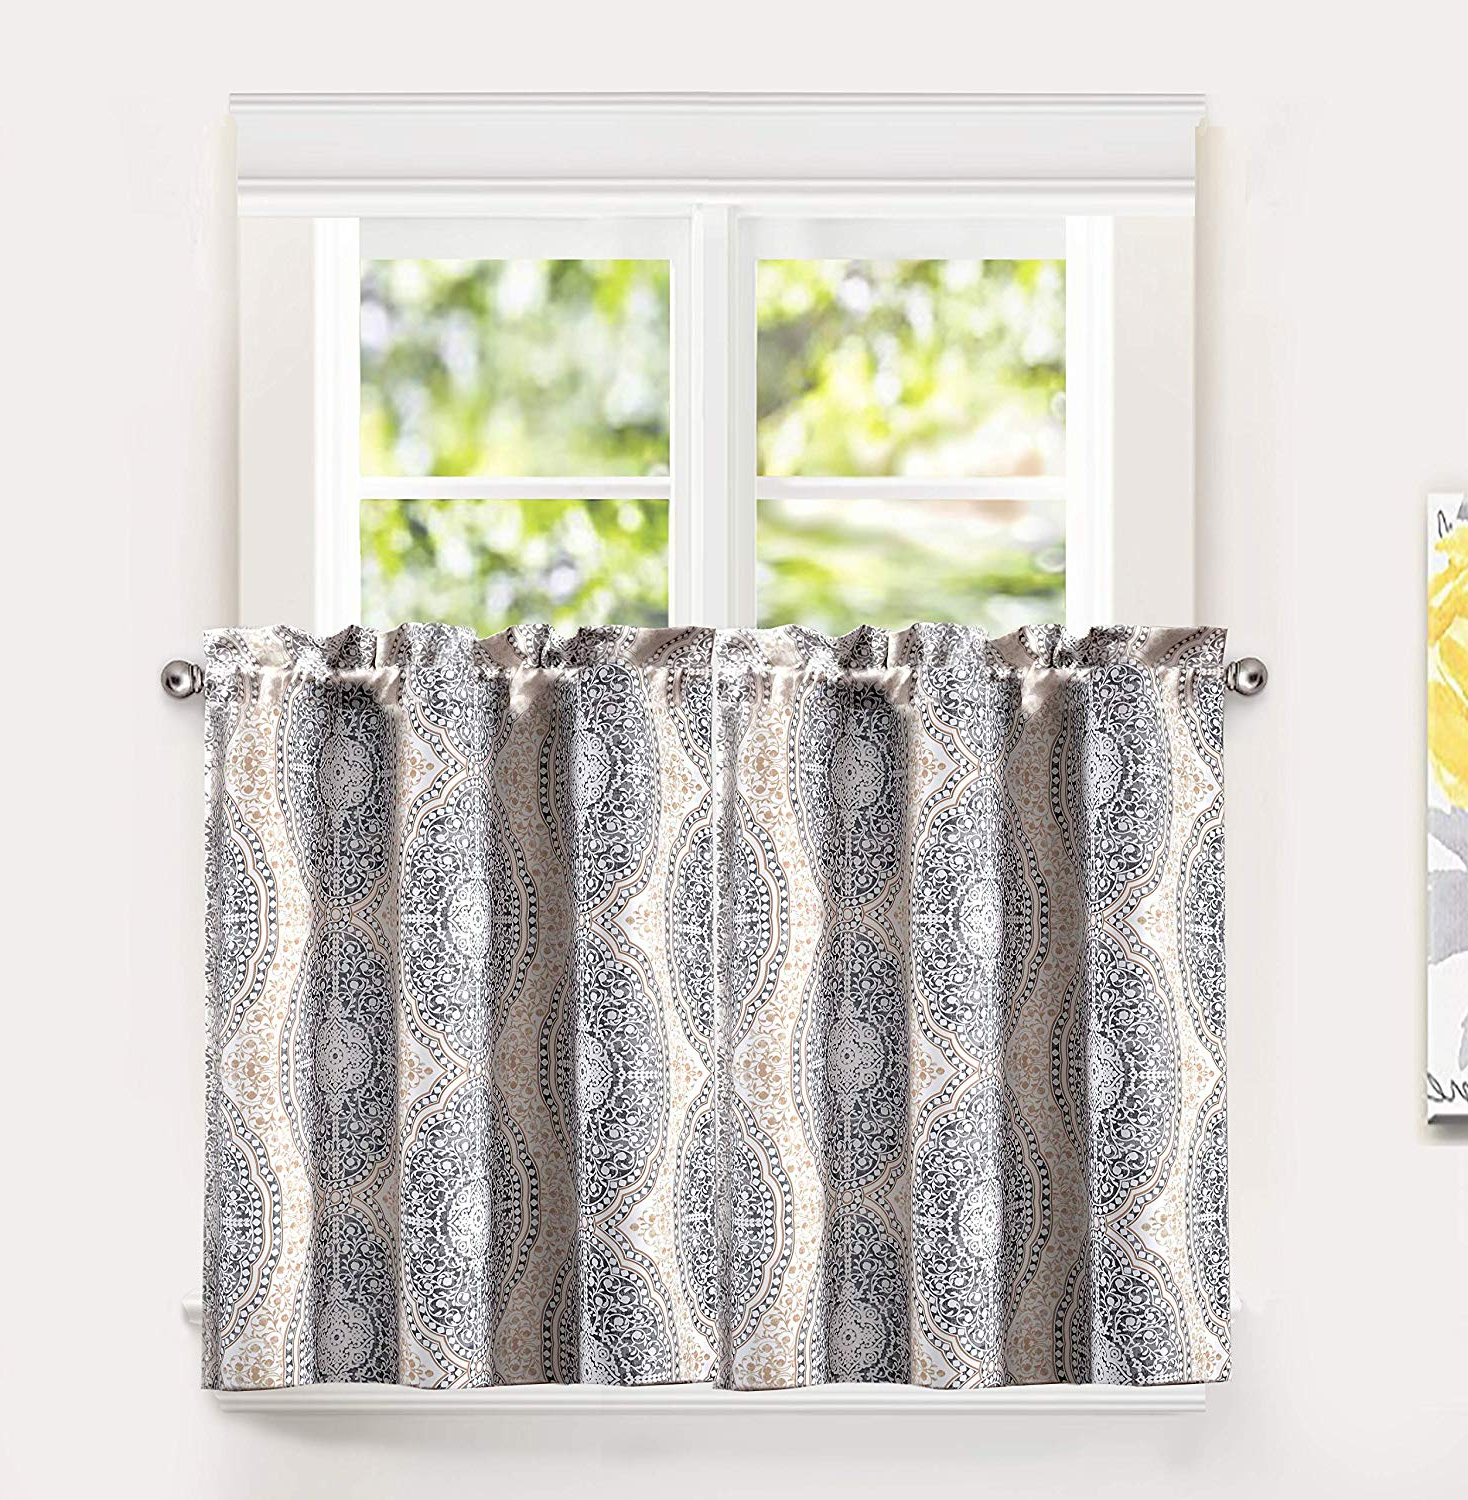 Driftaway Adrianne Thermal And Room Darkening Kitchen Tier Window Treatment Set Of 2 Each 30 Inch36 Inch Plus 1 Inch Header Beige And Gray For Well Liked Pastel Damask Printed Room Darkening Kitchen Tiers (View 2 of 20)